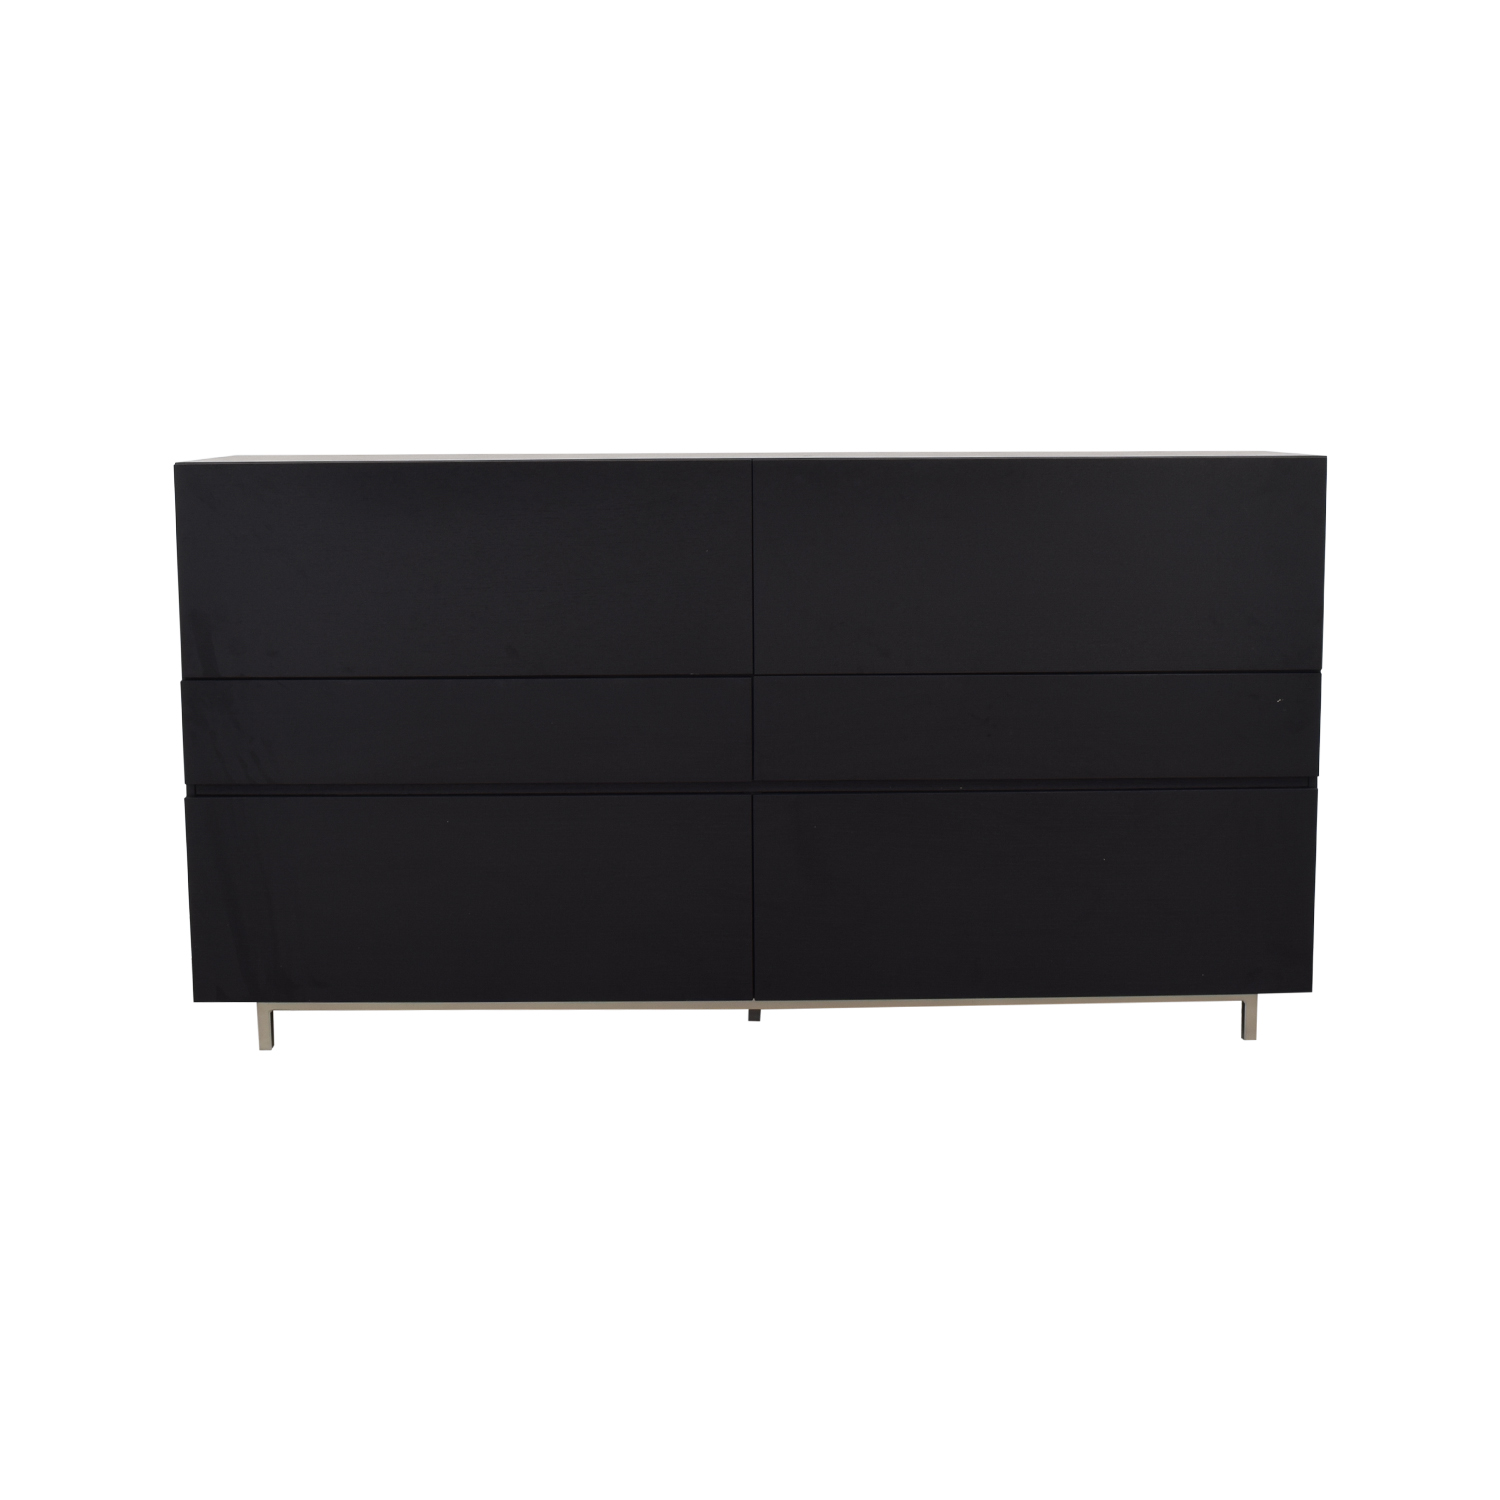 West Elm Six Drawer Dresser / Dressers